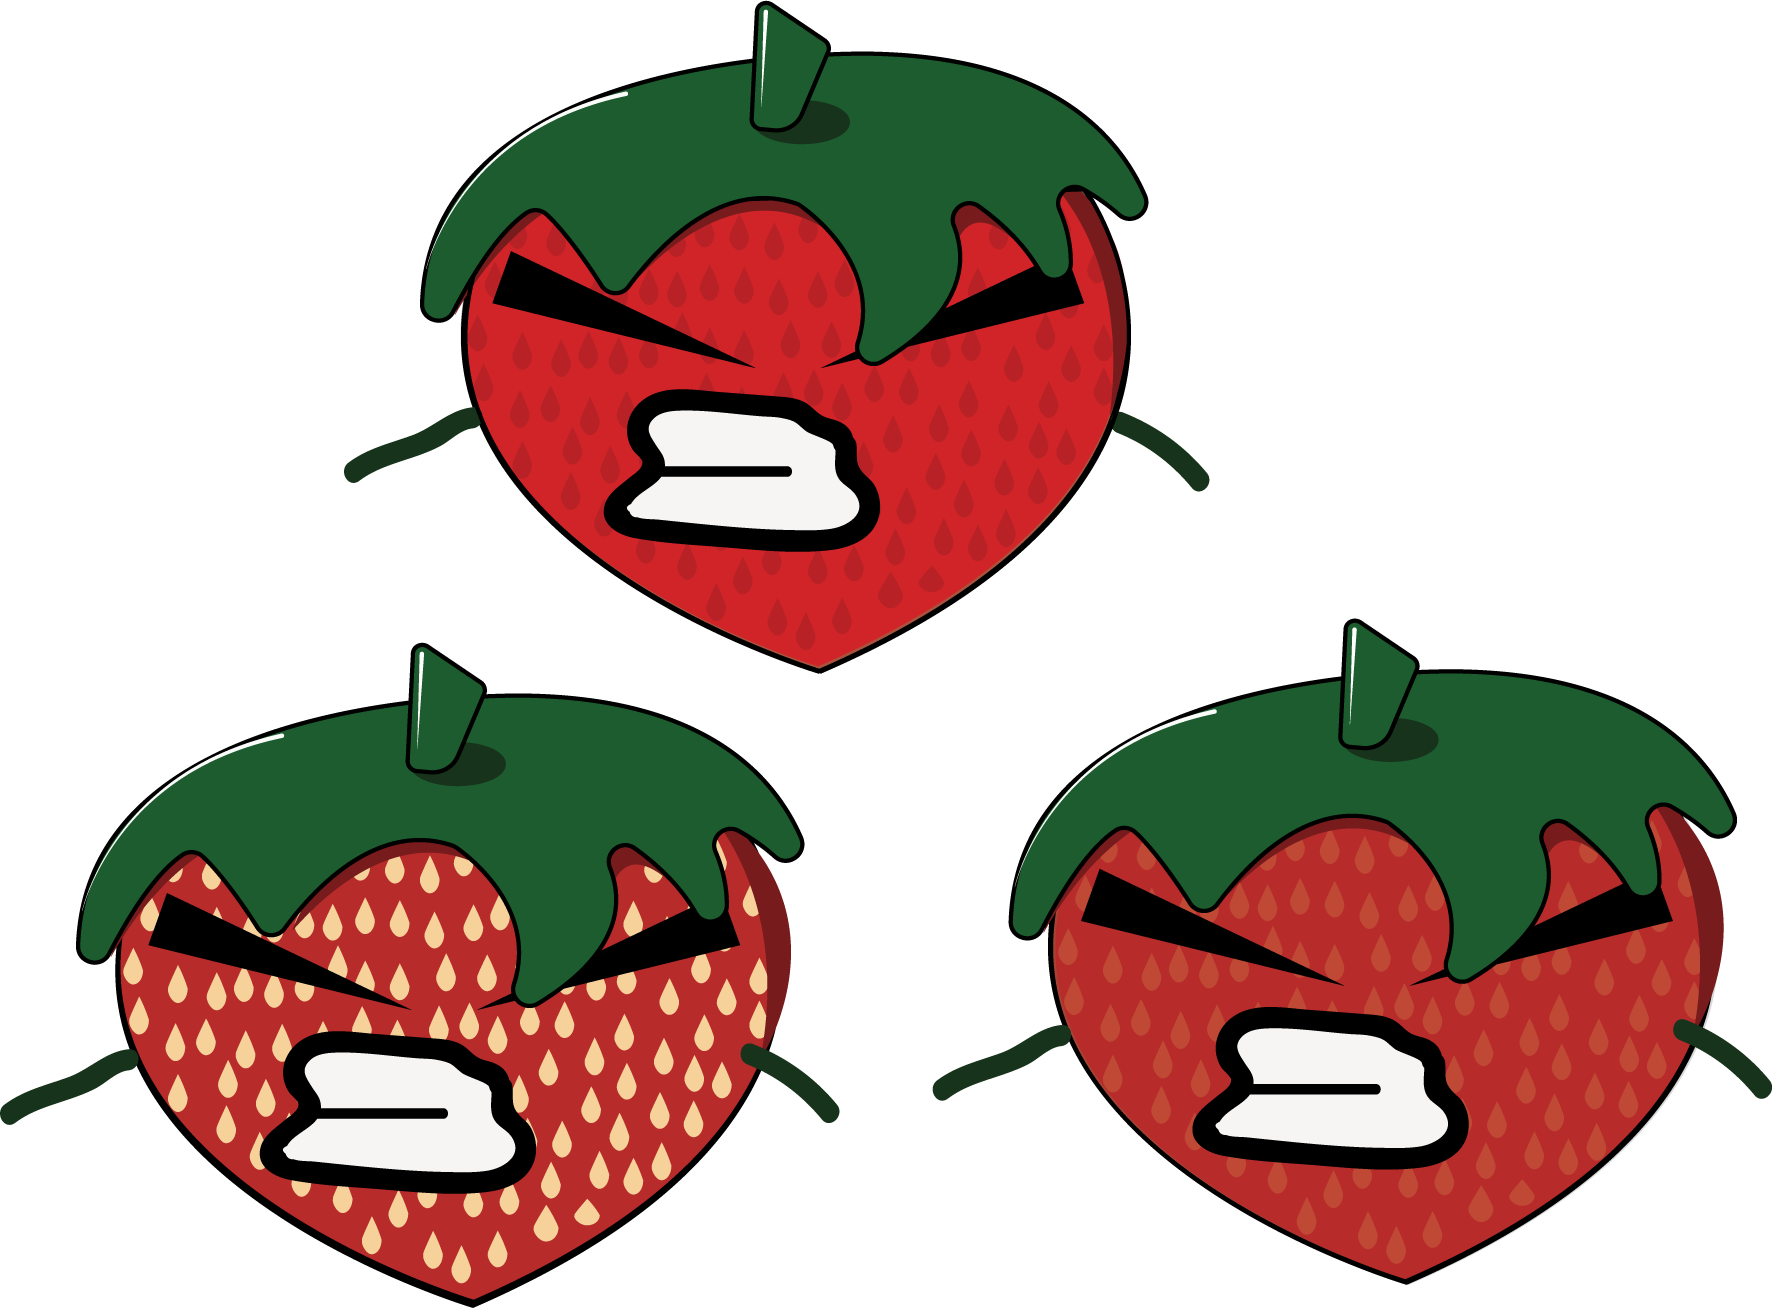 Strawberries clipart angry. Kelly gomez that s